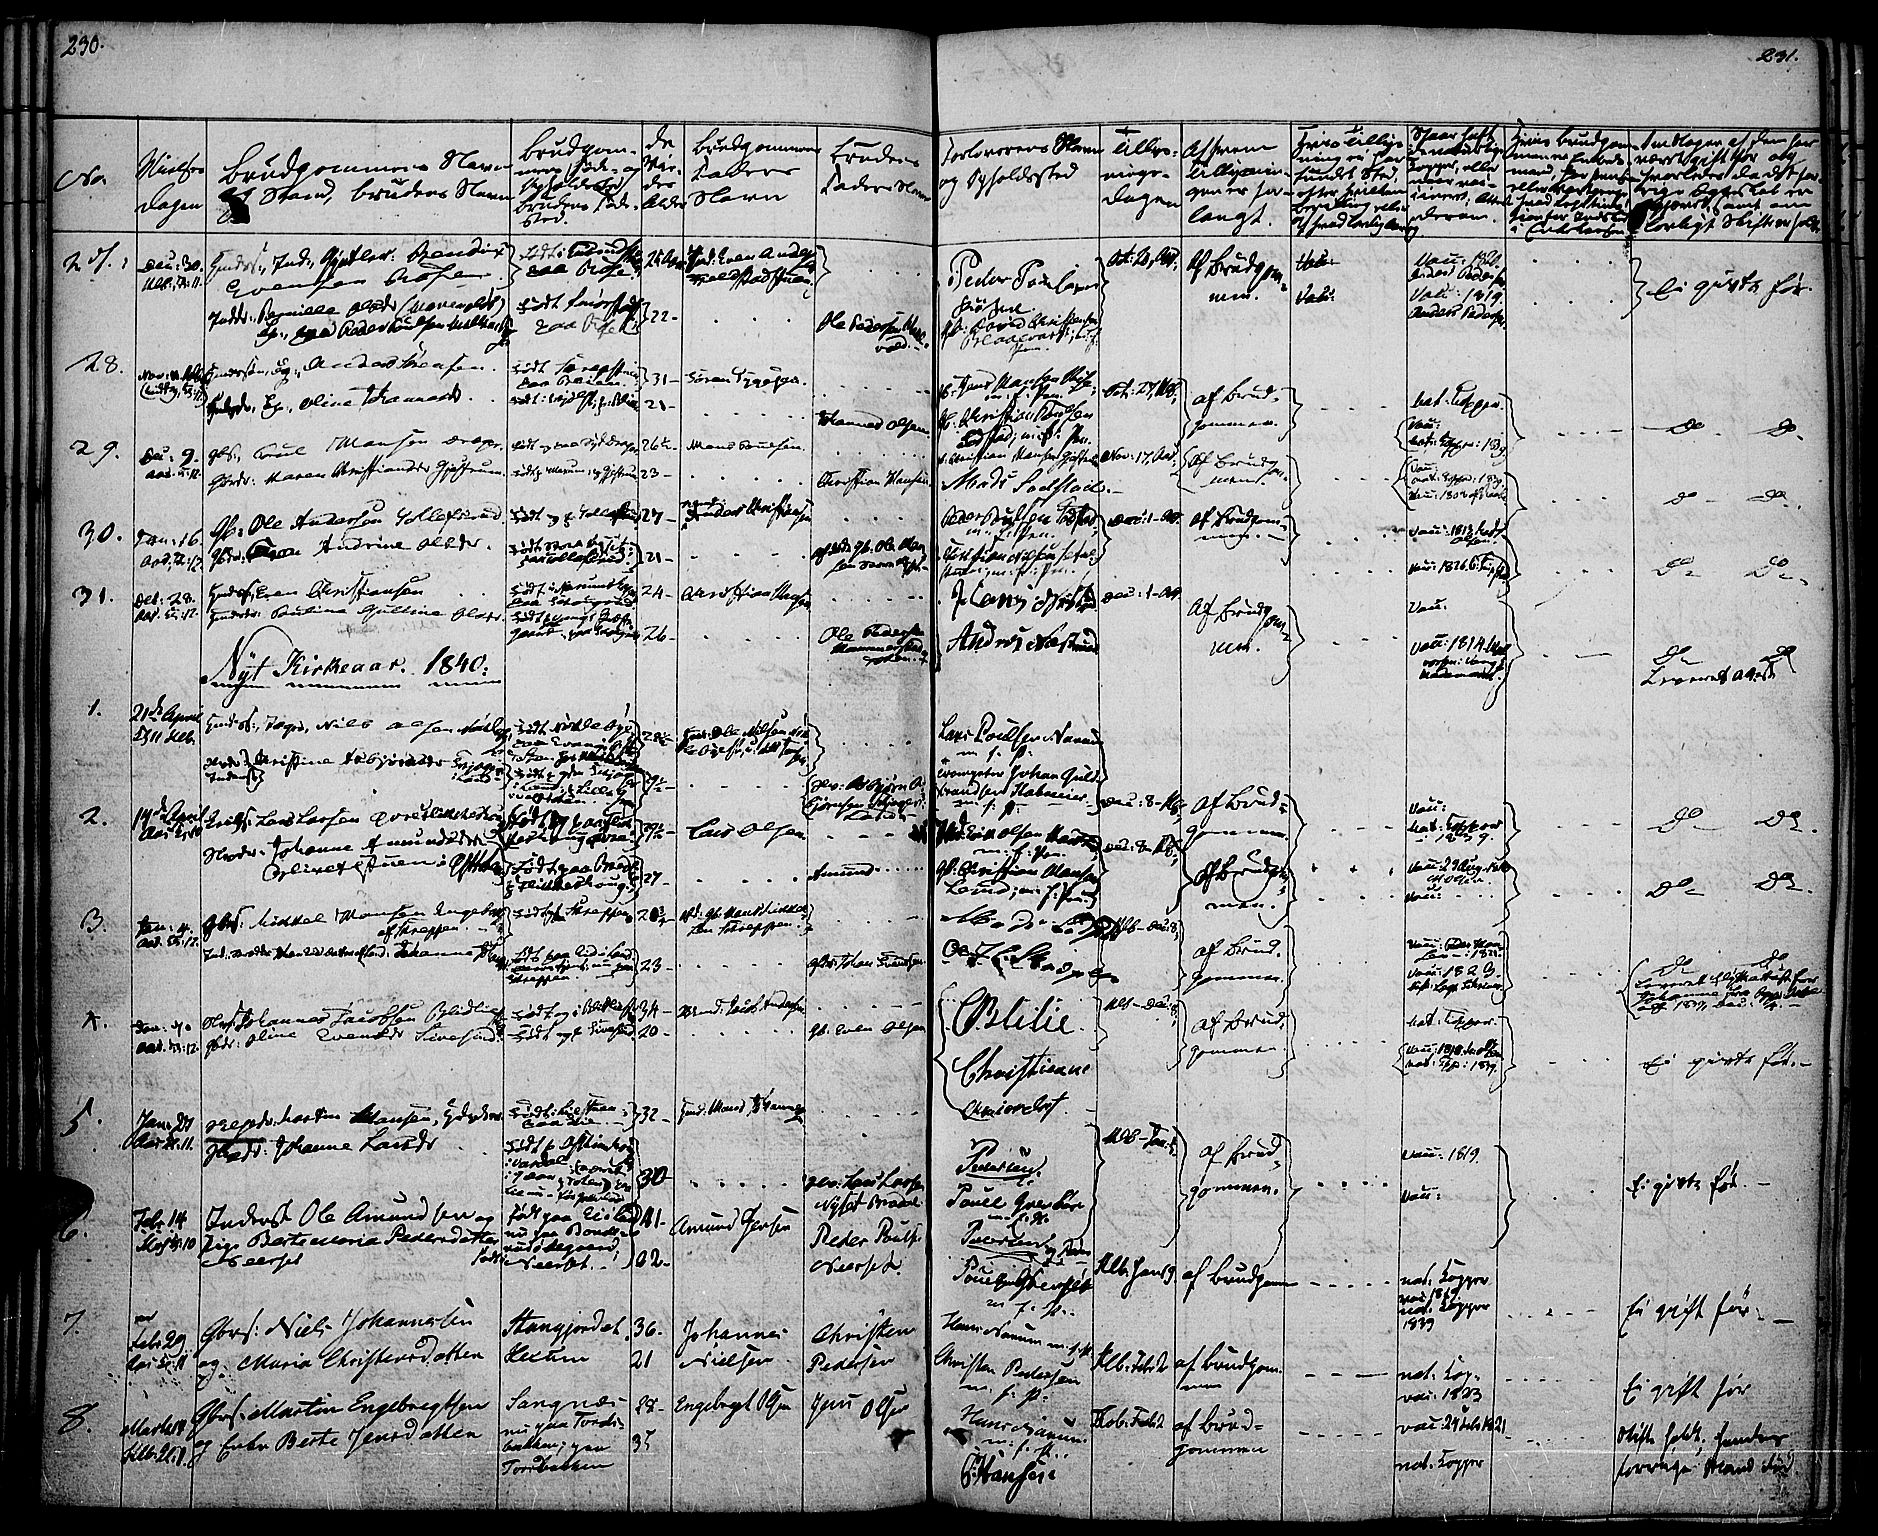 SAH, Vestre Toten prestekontor, H/Ha/Haa/L0003: Parish register (official) no. 3, 1836-1843, p. 230-231